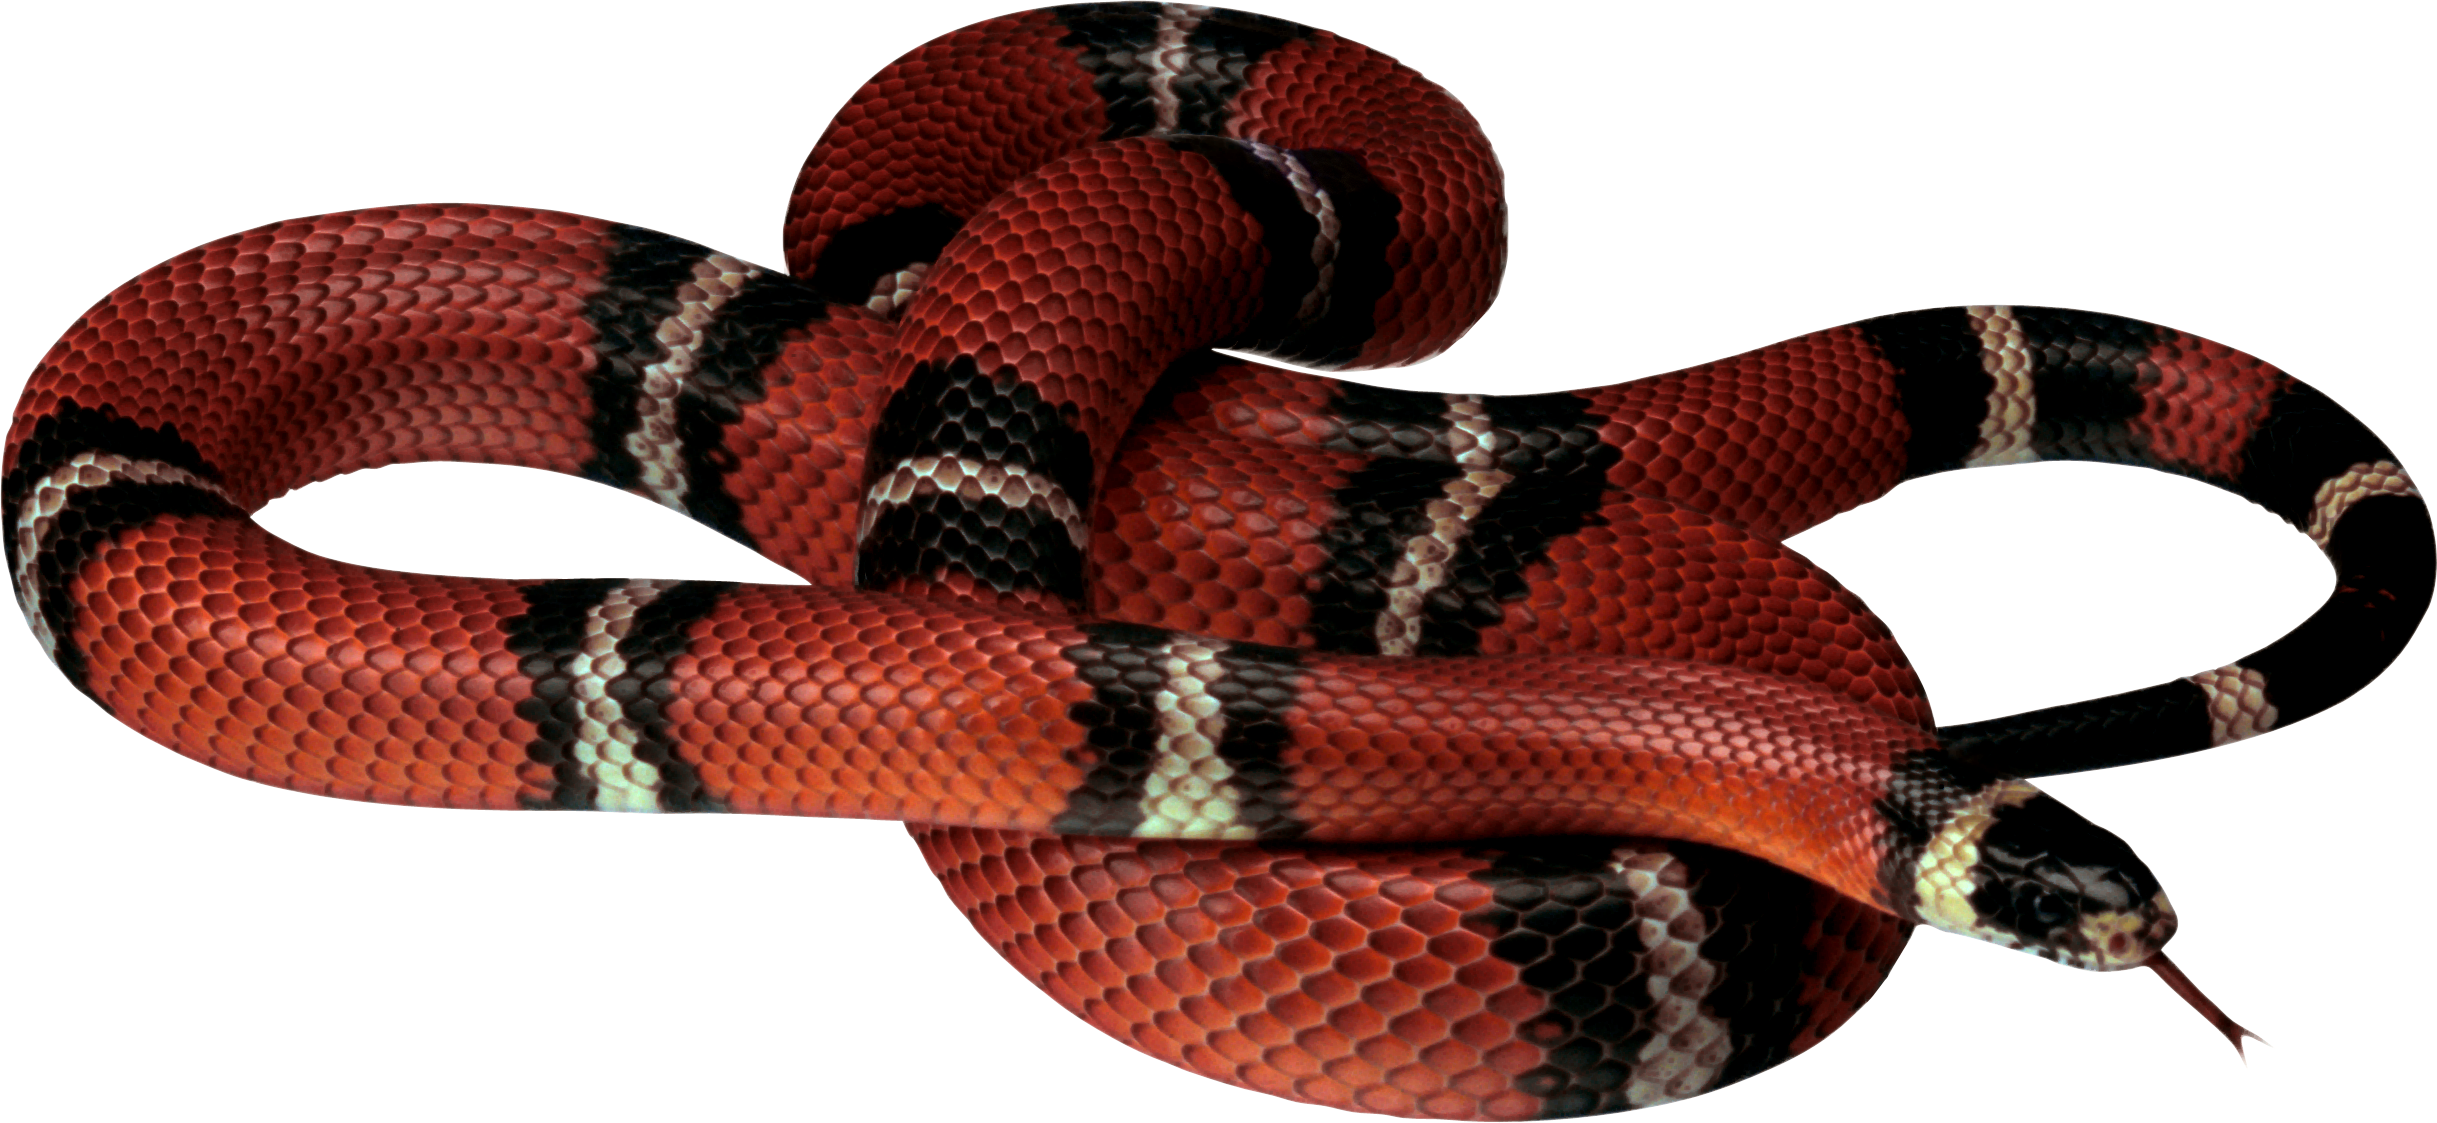 Snake HD PNG - 93002